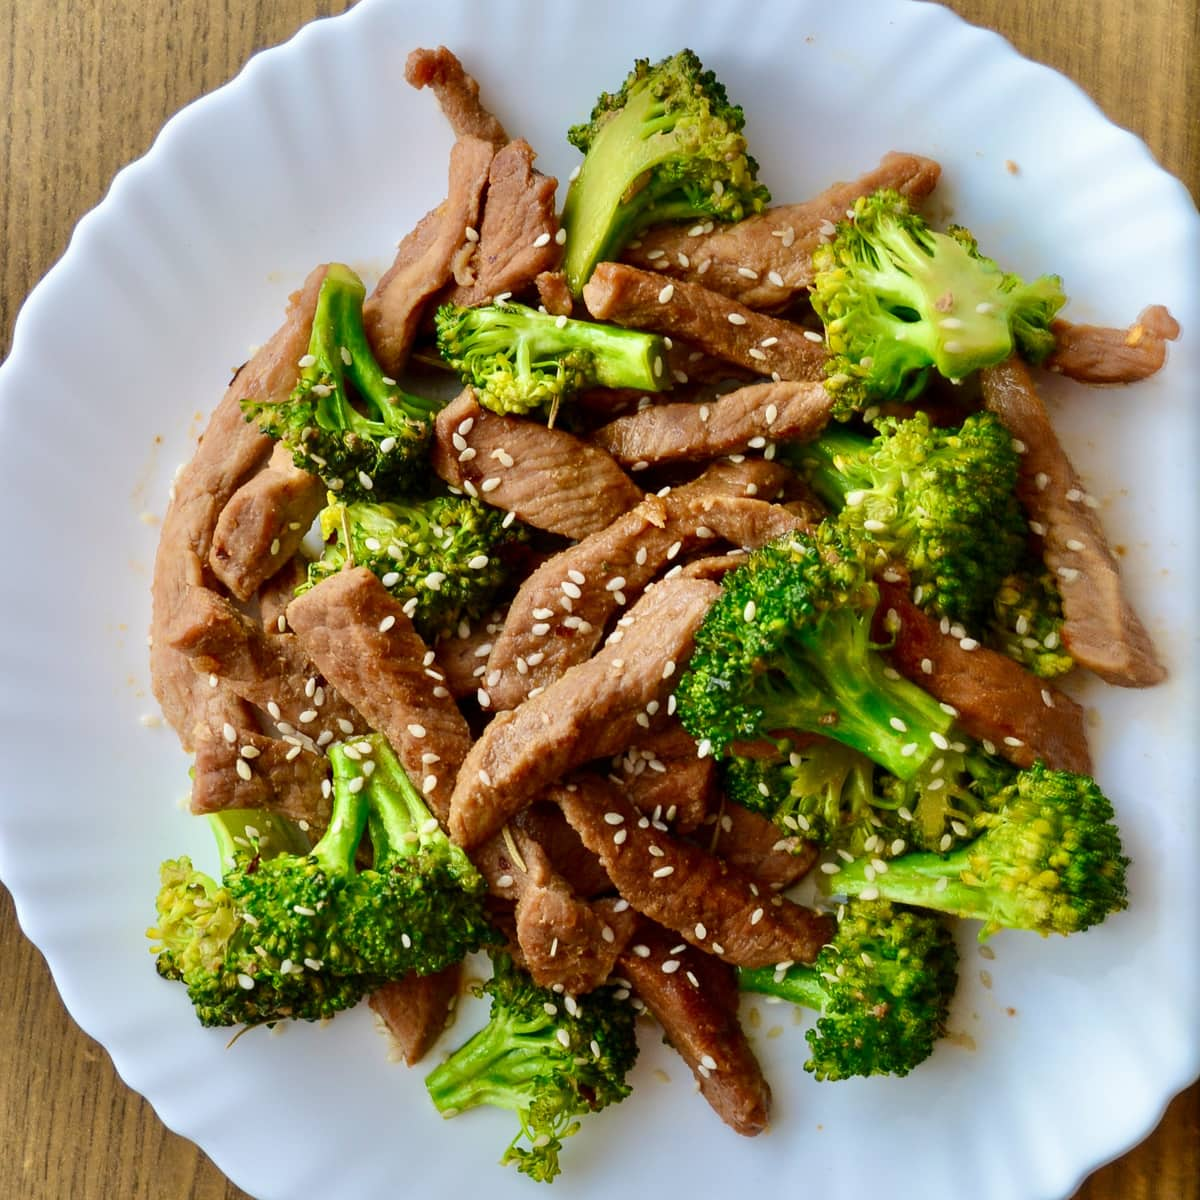 Keto Beef and Broccoli Stir Fry finished